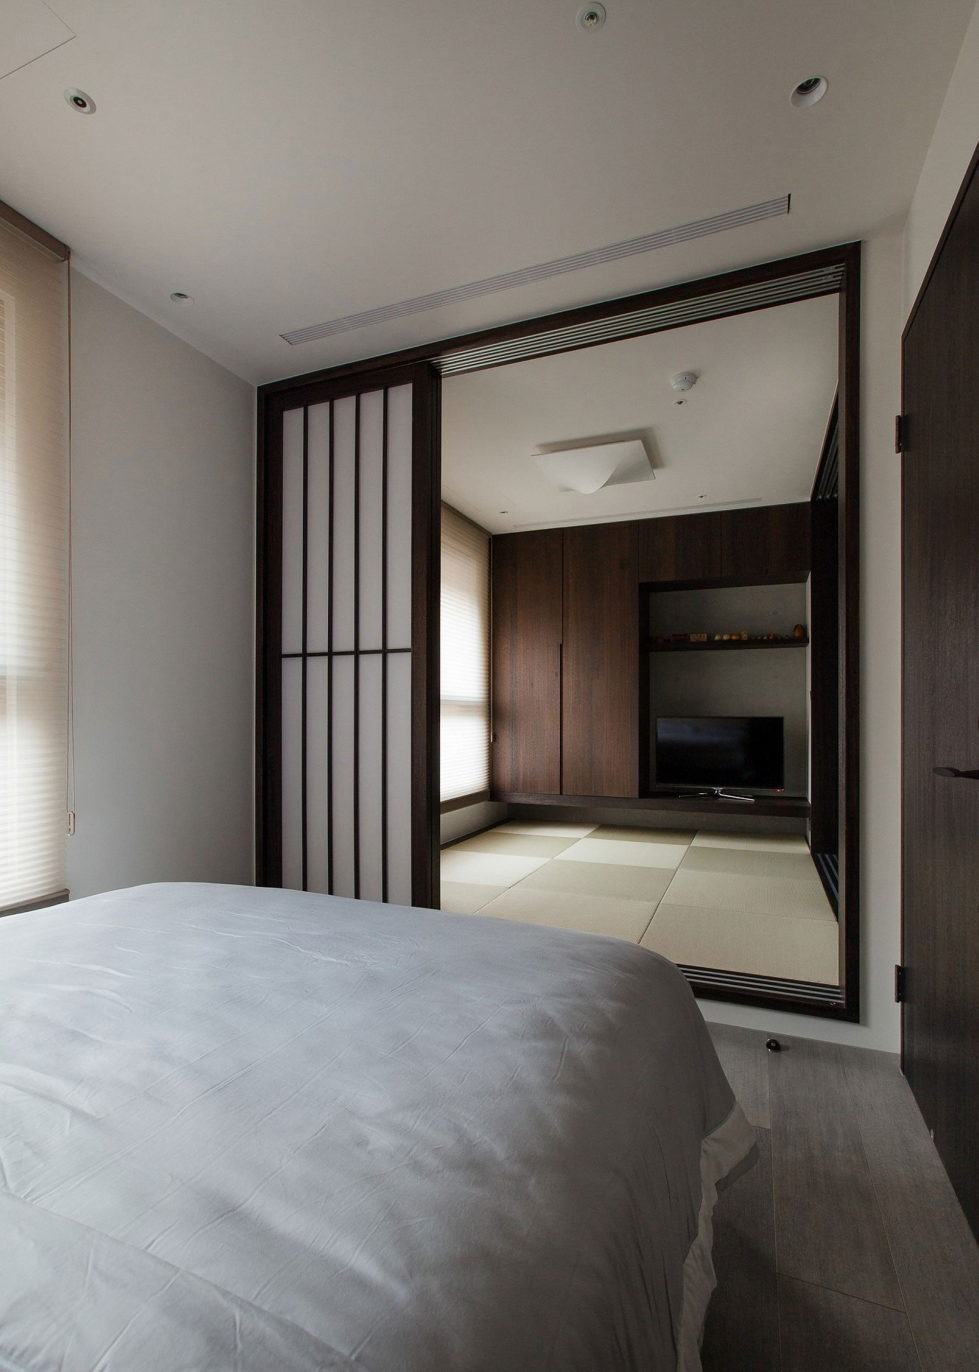 The Wang House Apartment In Taiwan Upon The Project Of The PM Design Studio 33